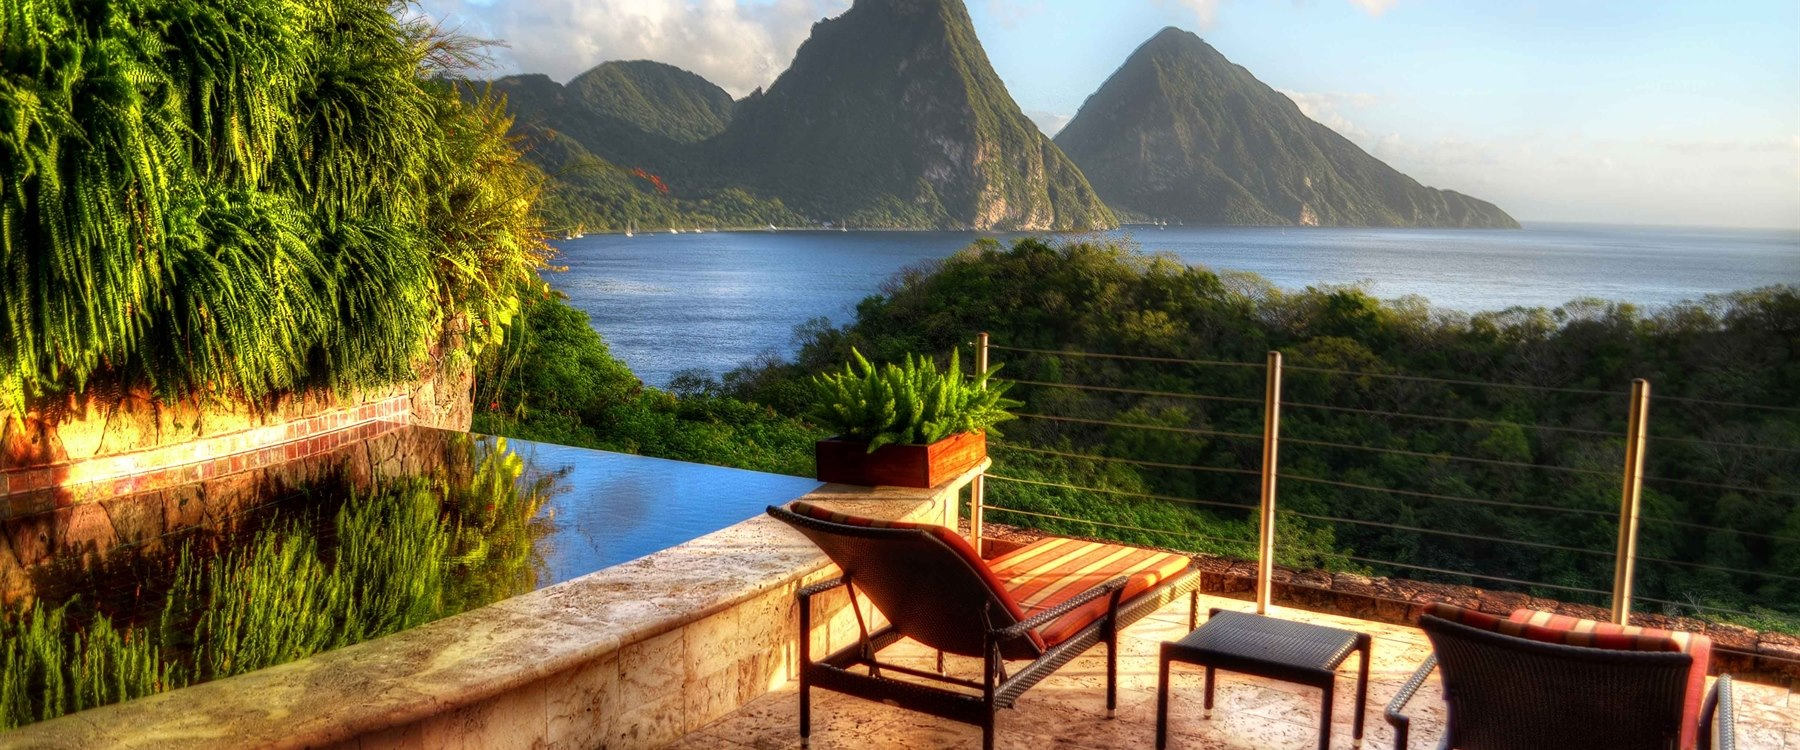 relax along the beautiful shore line at jade mountain st lucia